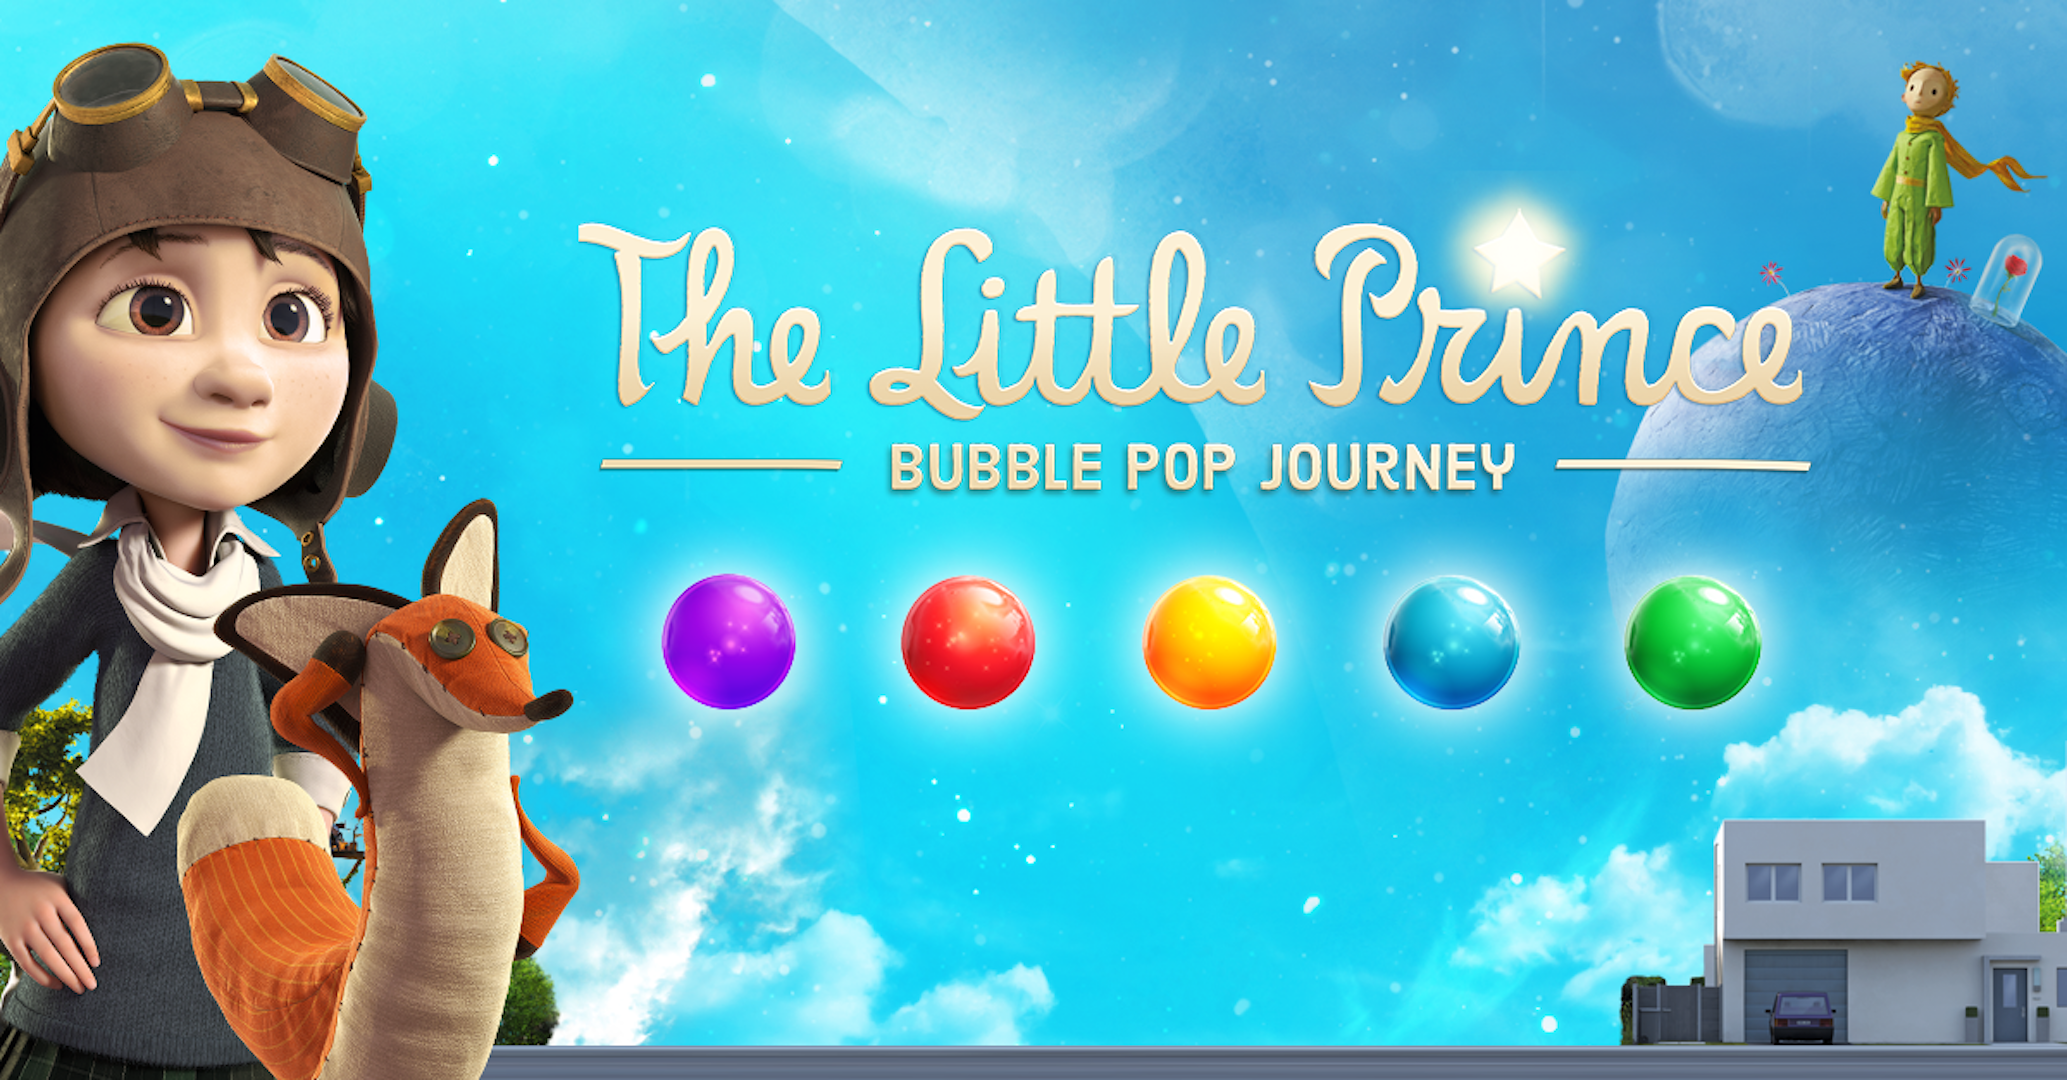 Pop bubbles and enjoy adventures with The Little Prince